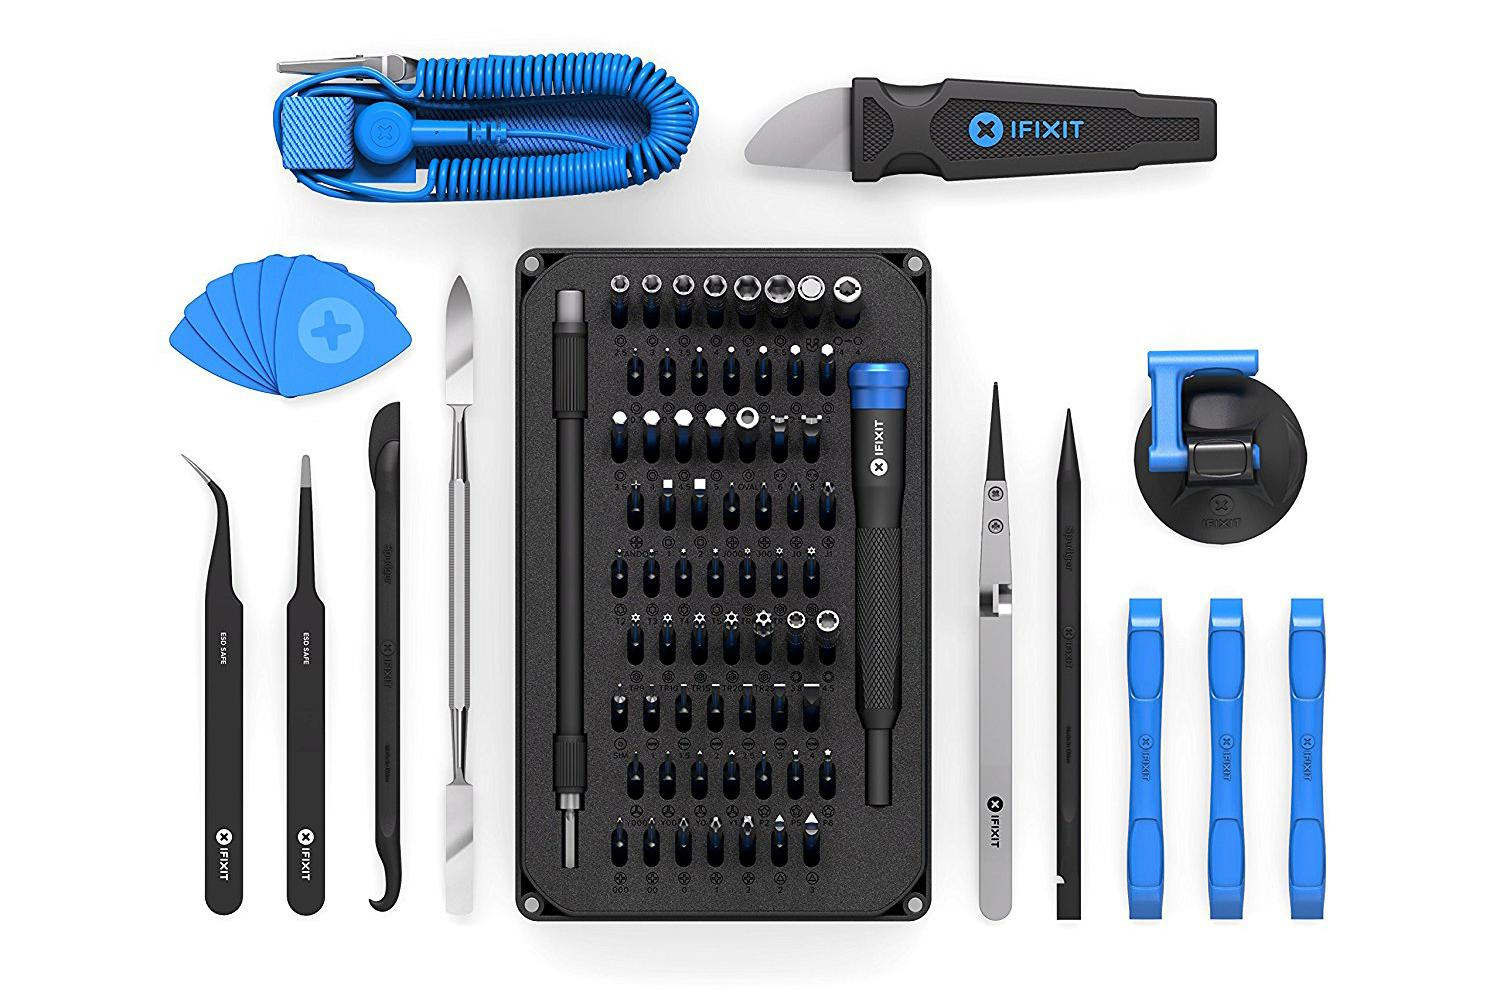 Game Console Precision Screwdriver Set ANSERX 48 in 1 Mini Magnetic Screwdriver Bit Repair Tool Kit for iPhone Macbook Cellphone Tablet Xbox PC